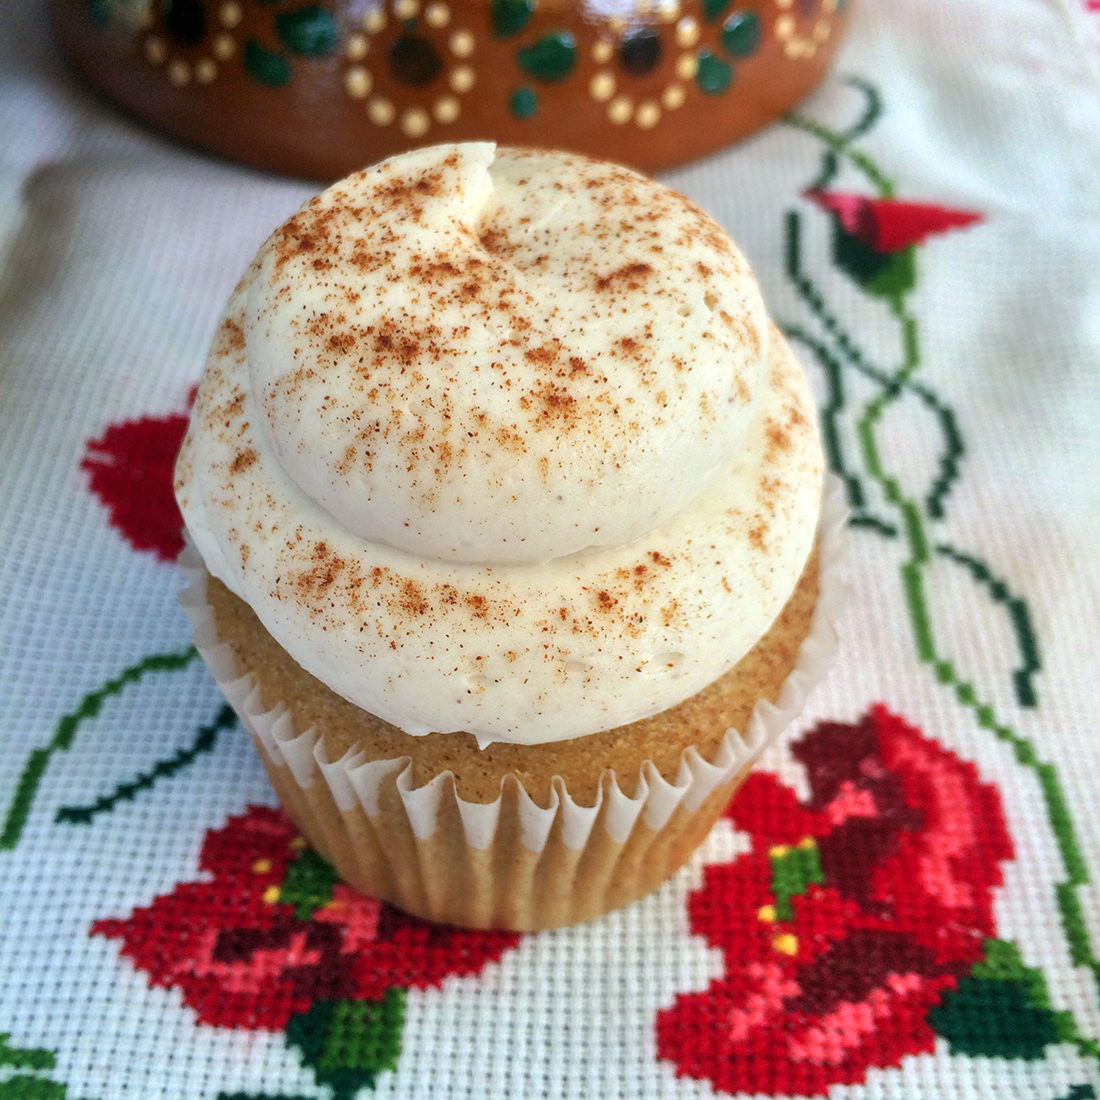 Horchata cupcake | Courtesy of Viva Los Cupcakes